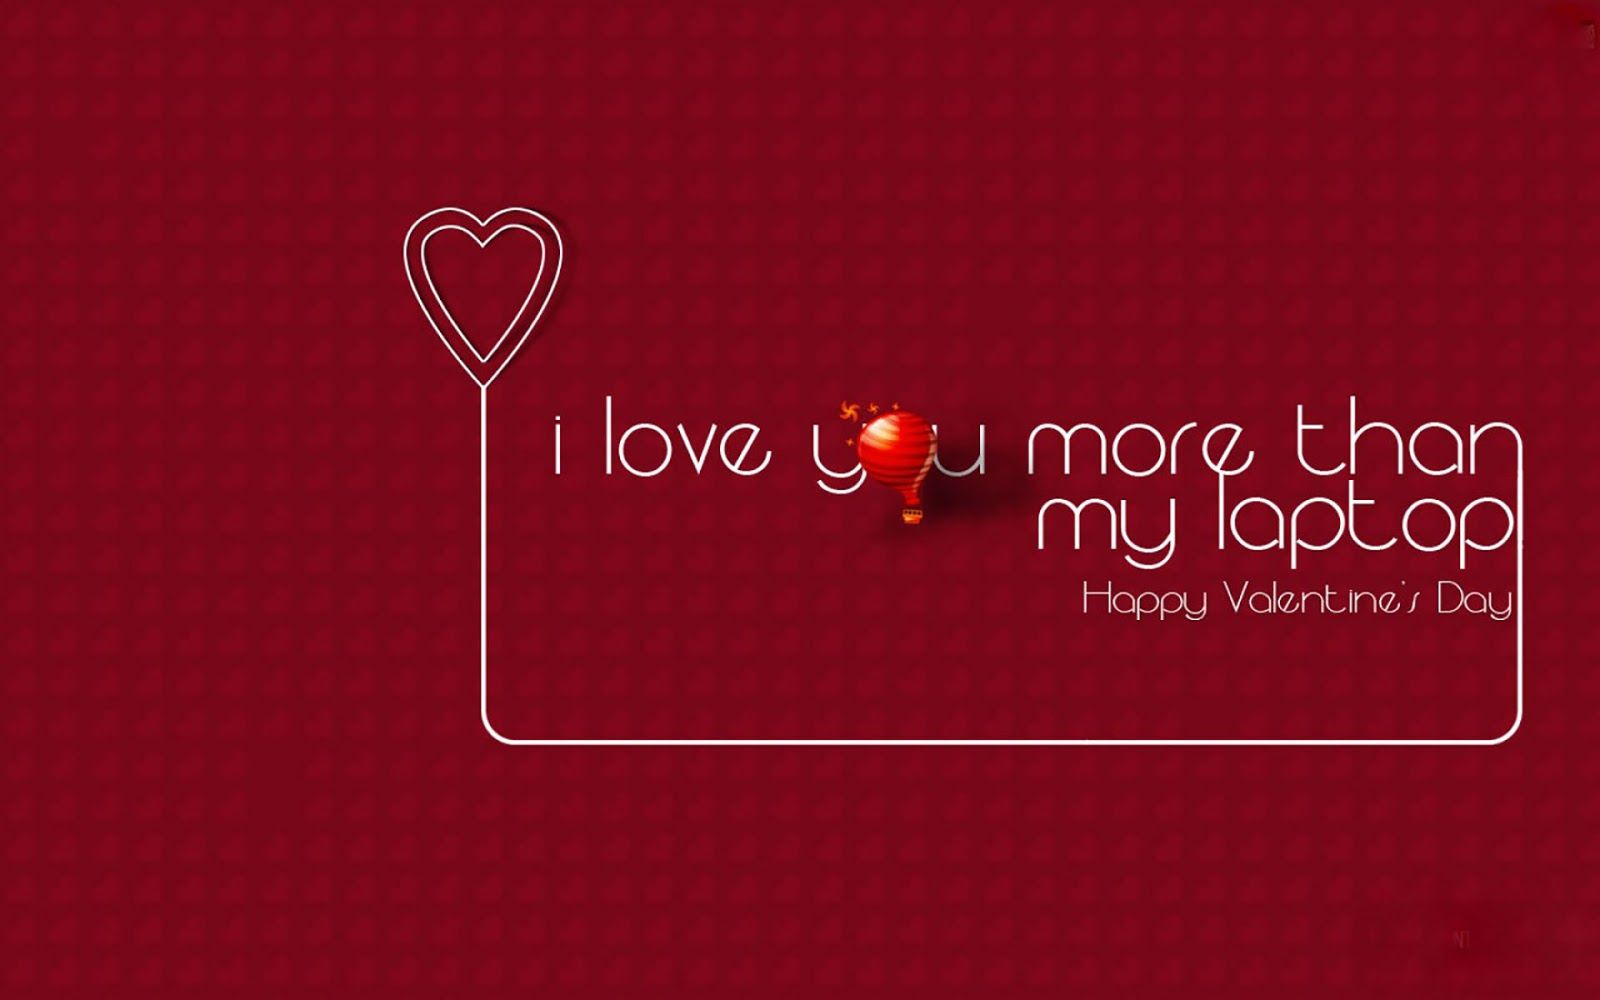 Happy Valentines Day 2017 Images Photos Free Download  Hello